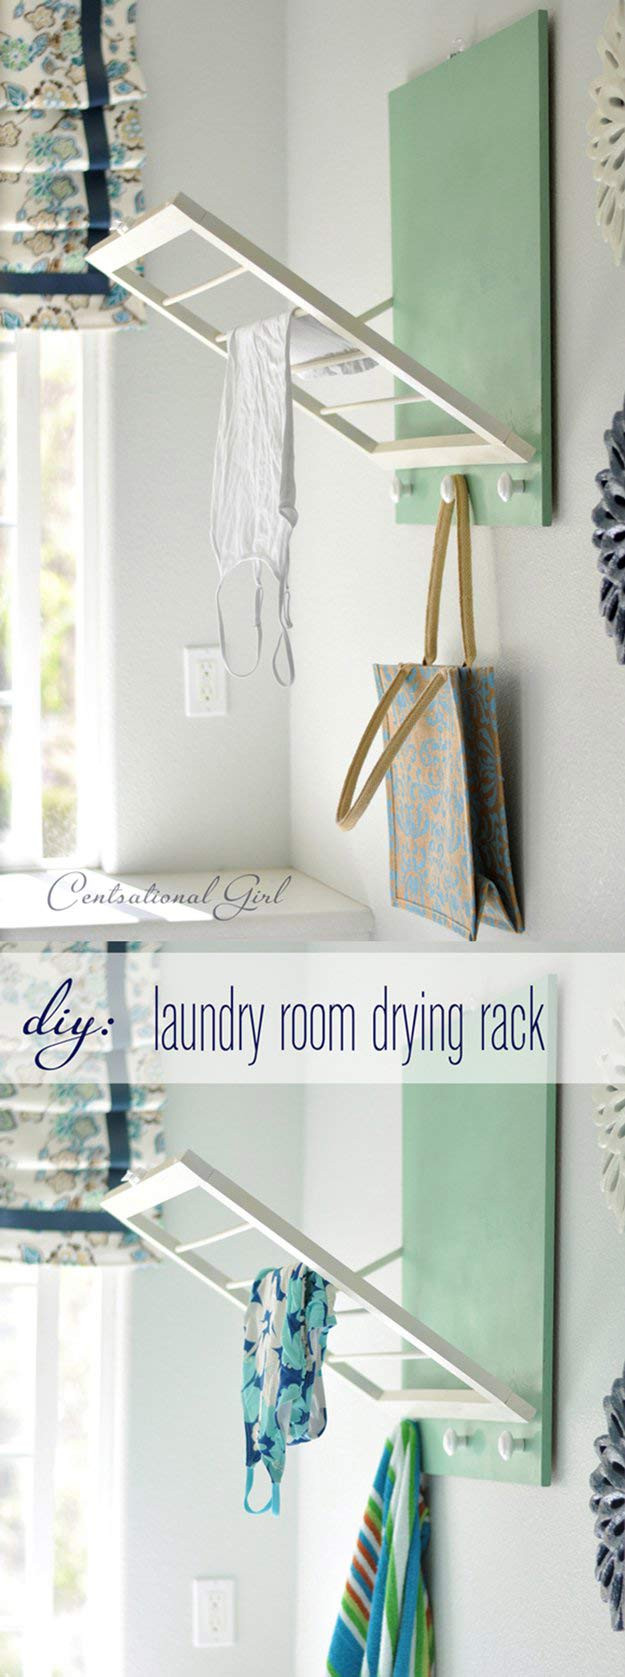 Best ideas about Diy Laundry Room Ideas . Save or Pin 17 Brilliant DIY Laundry Room Organization Ideas and Tips Now.